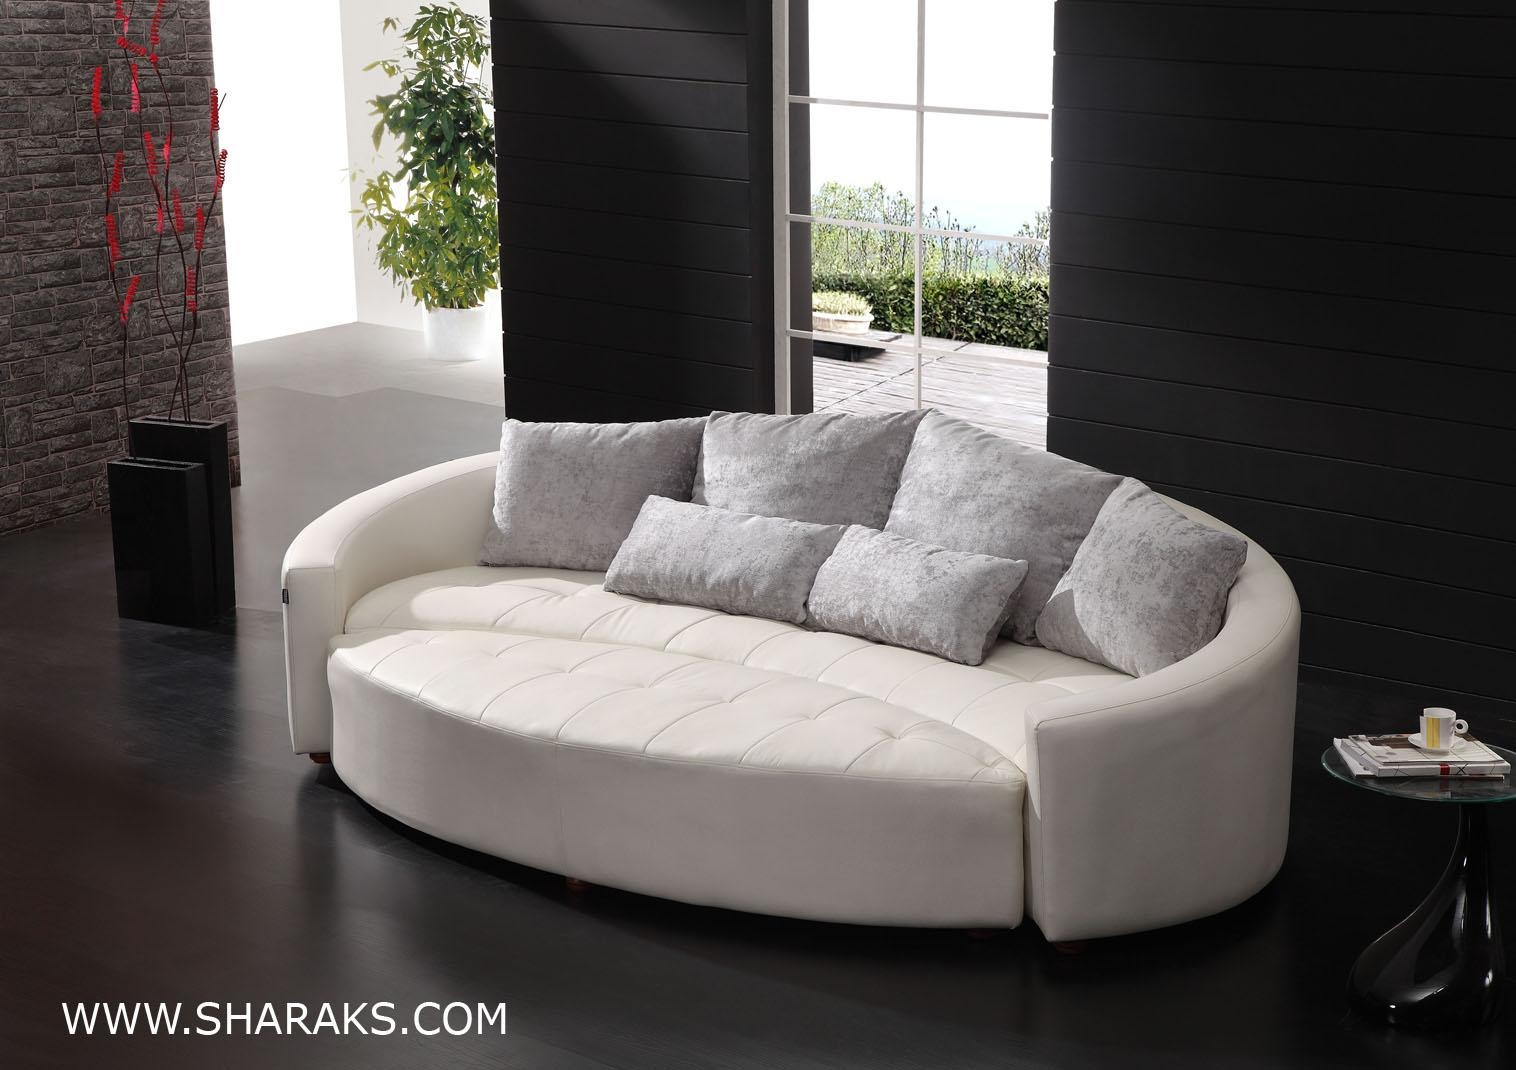 Sofas Center : Shocking Round Sofa Chair Picture Concept Bigrge Throughout Round Sofa Chairs (Image 18 of 20)